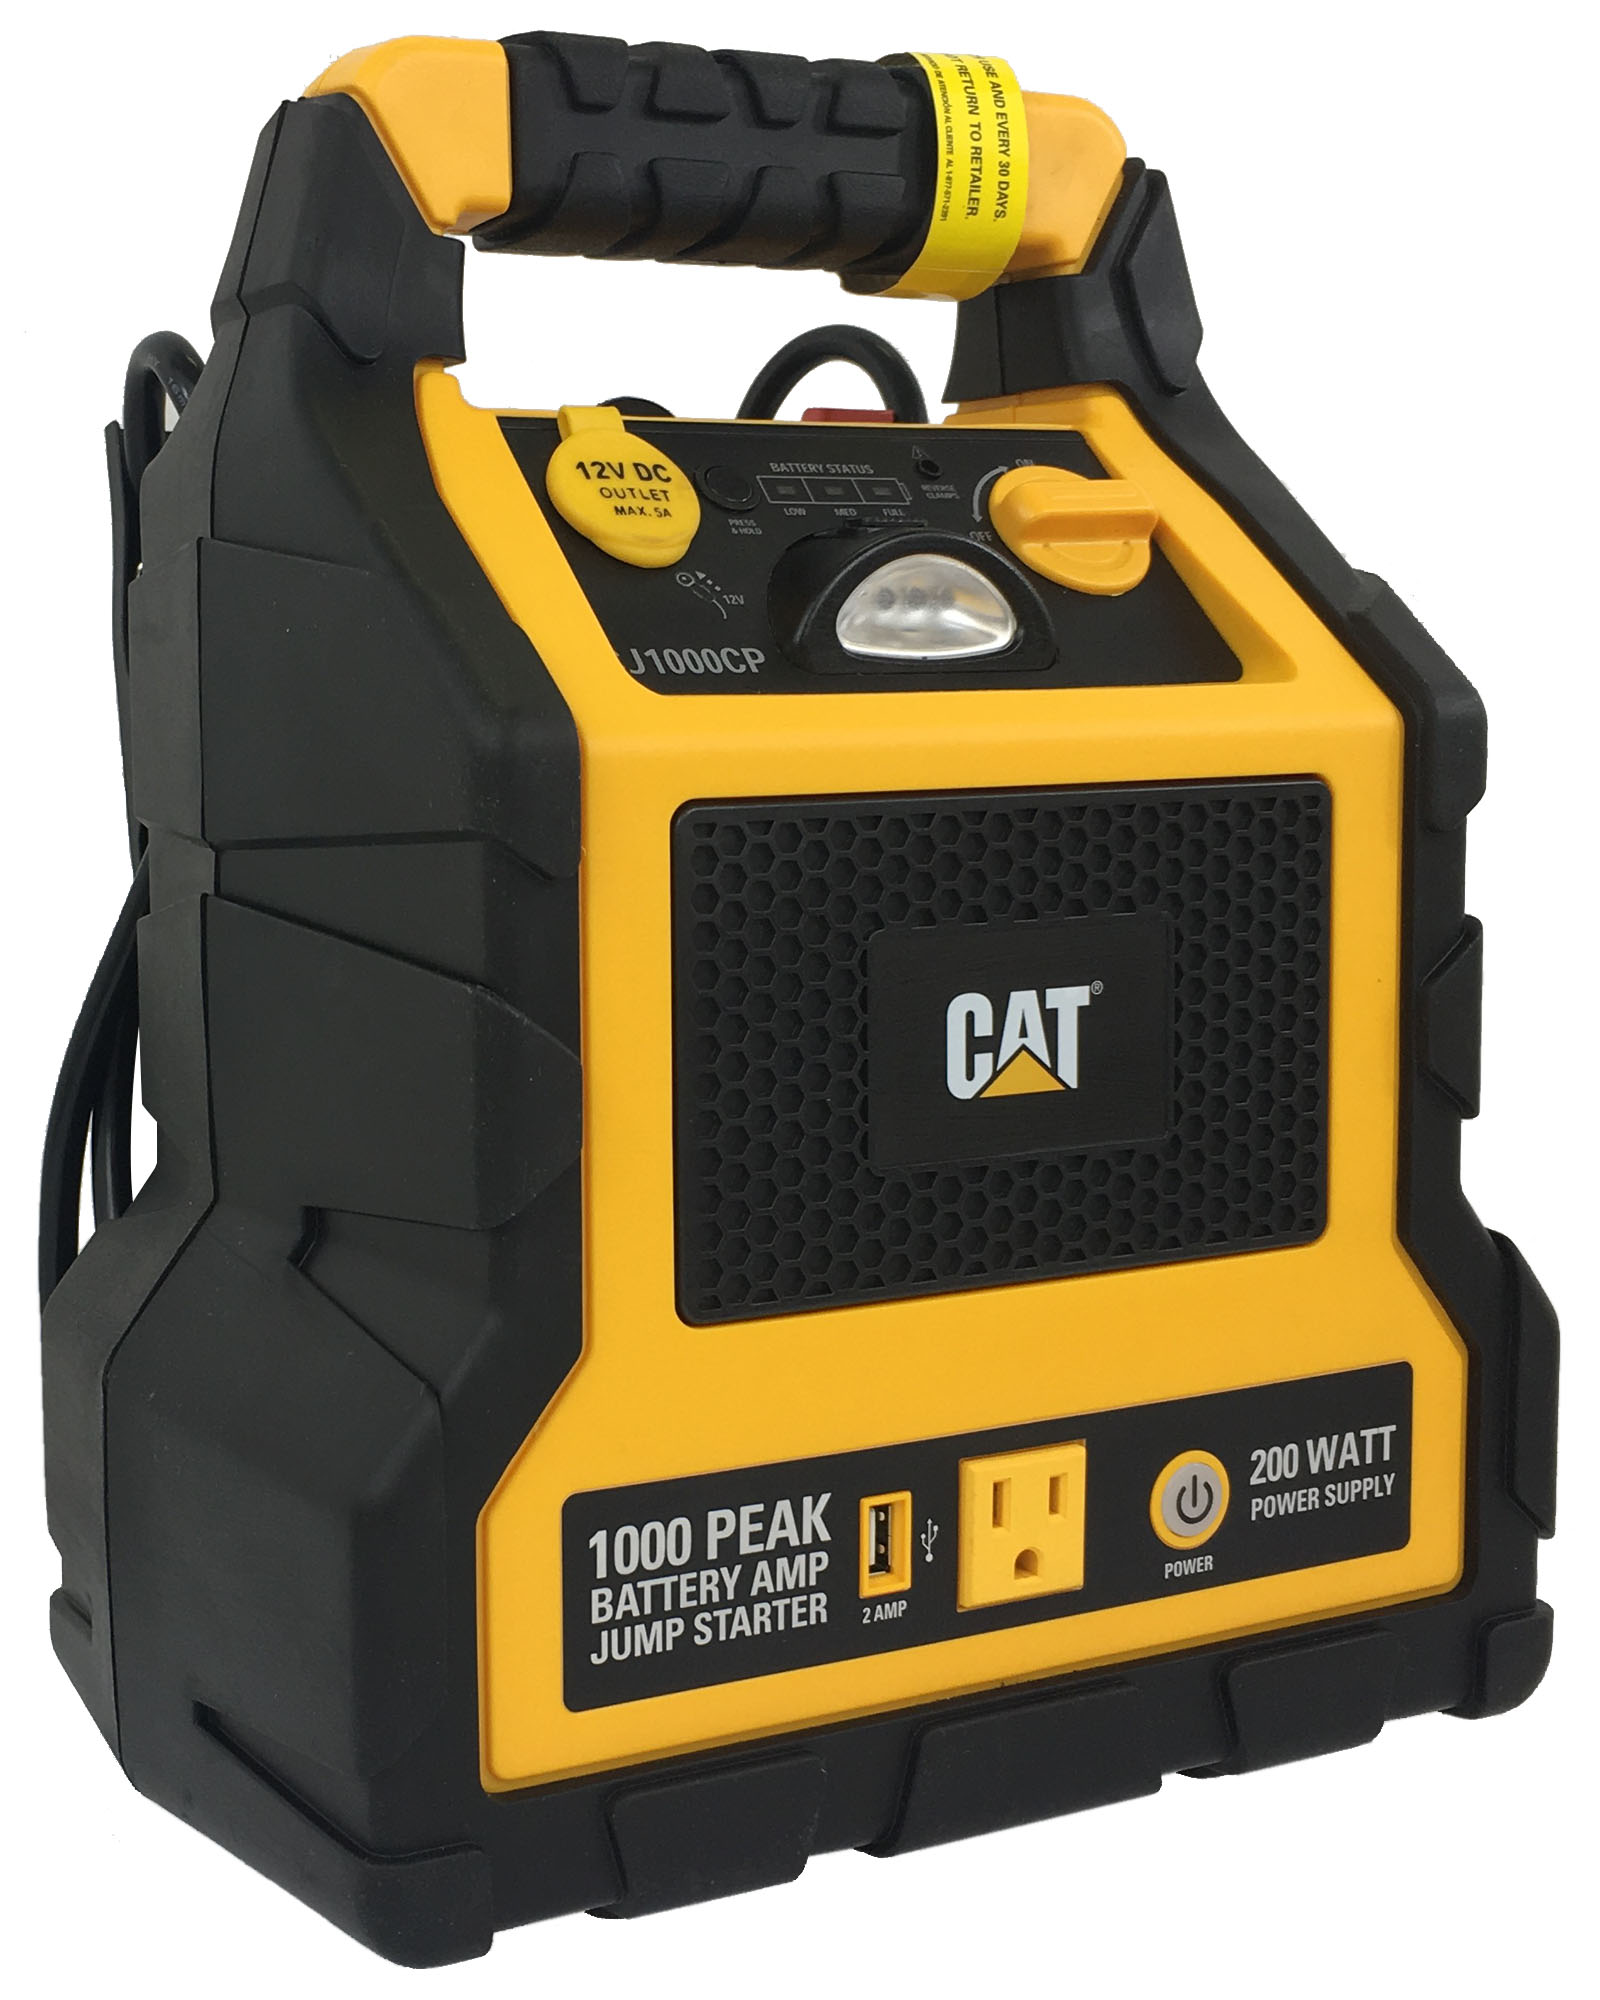 3 In 1 Cat Professional Power Station With Jump Starter & Compressor by Caterpillar